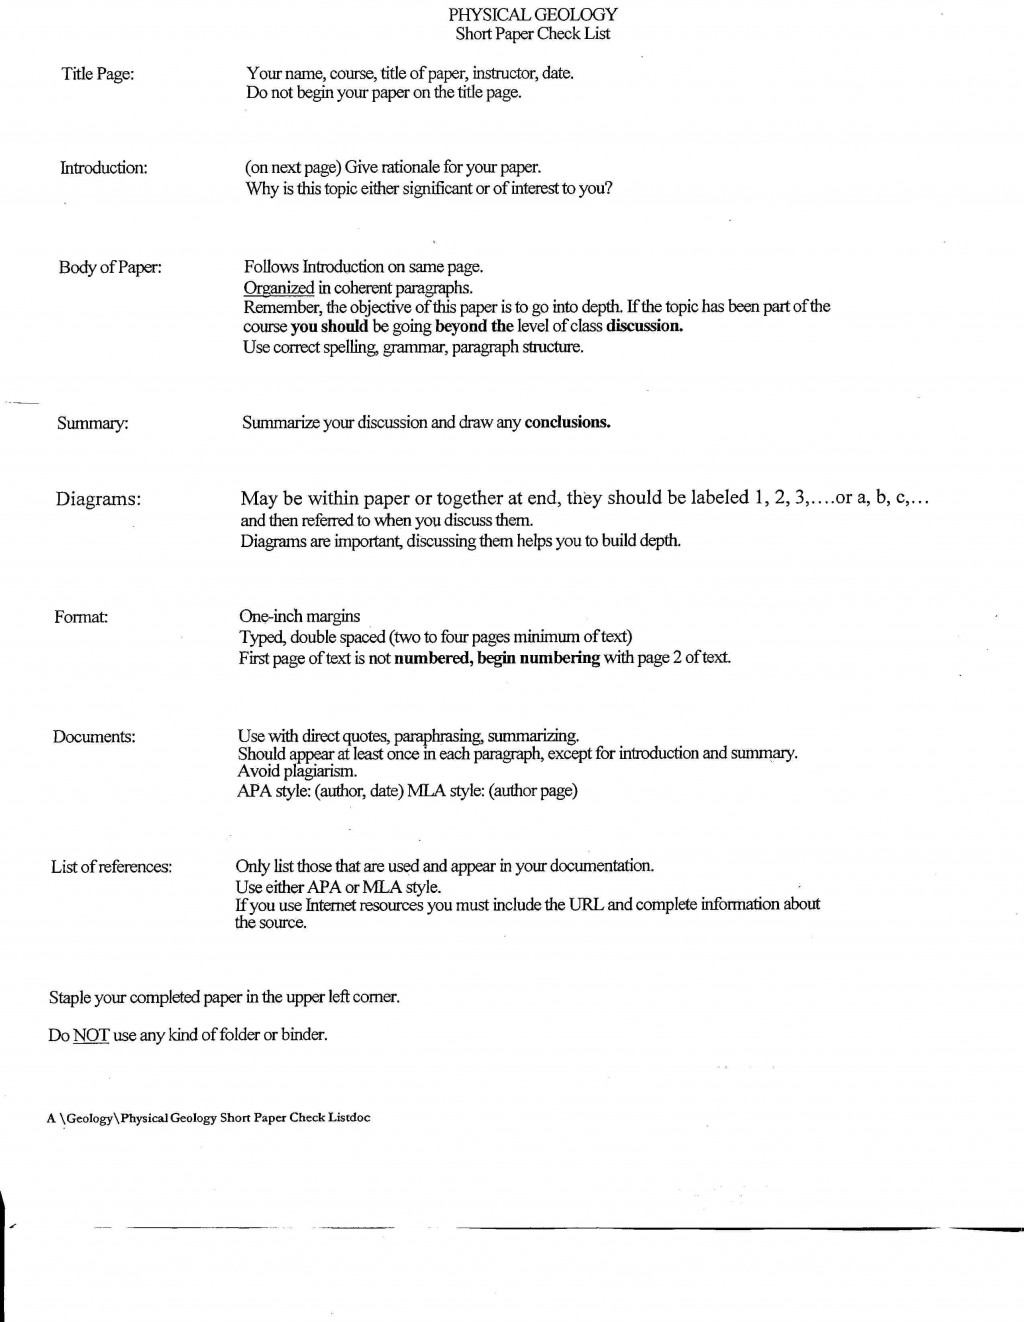 021 Research Paper Example Of Introduction Short Checklist Wonderful A About Bullying Psychology Scientific Large